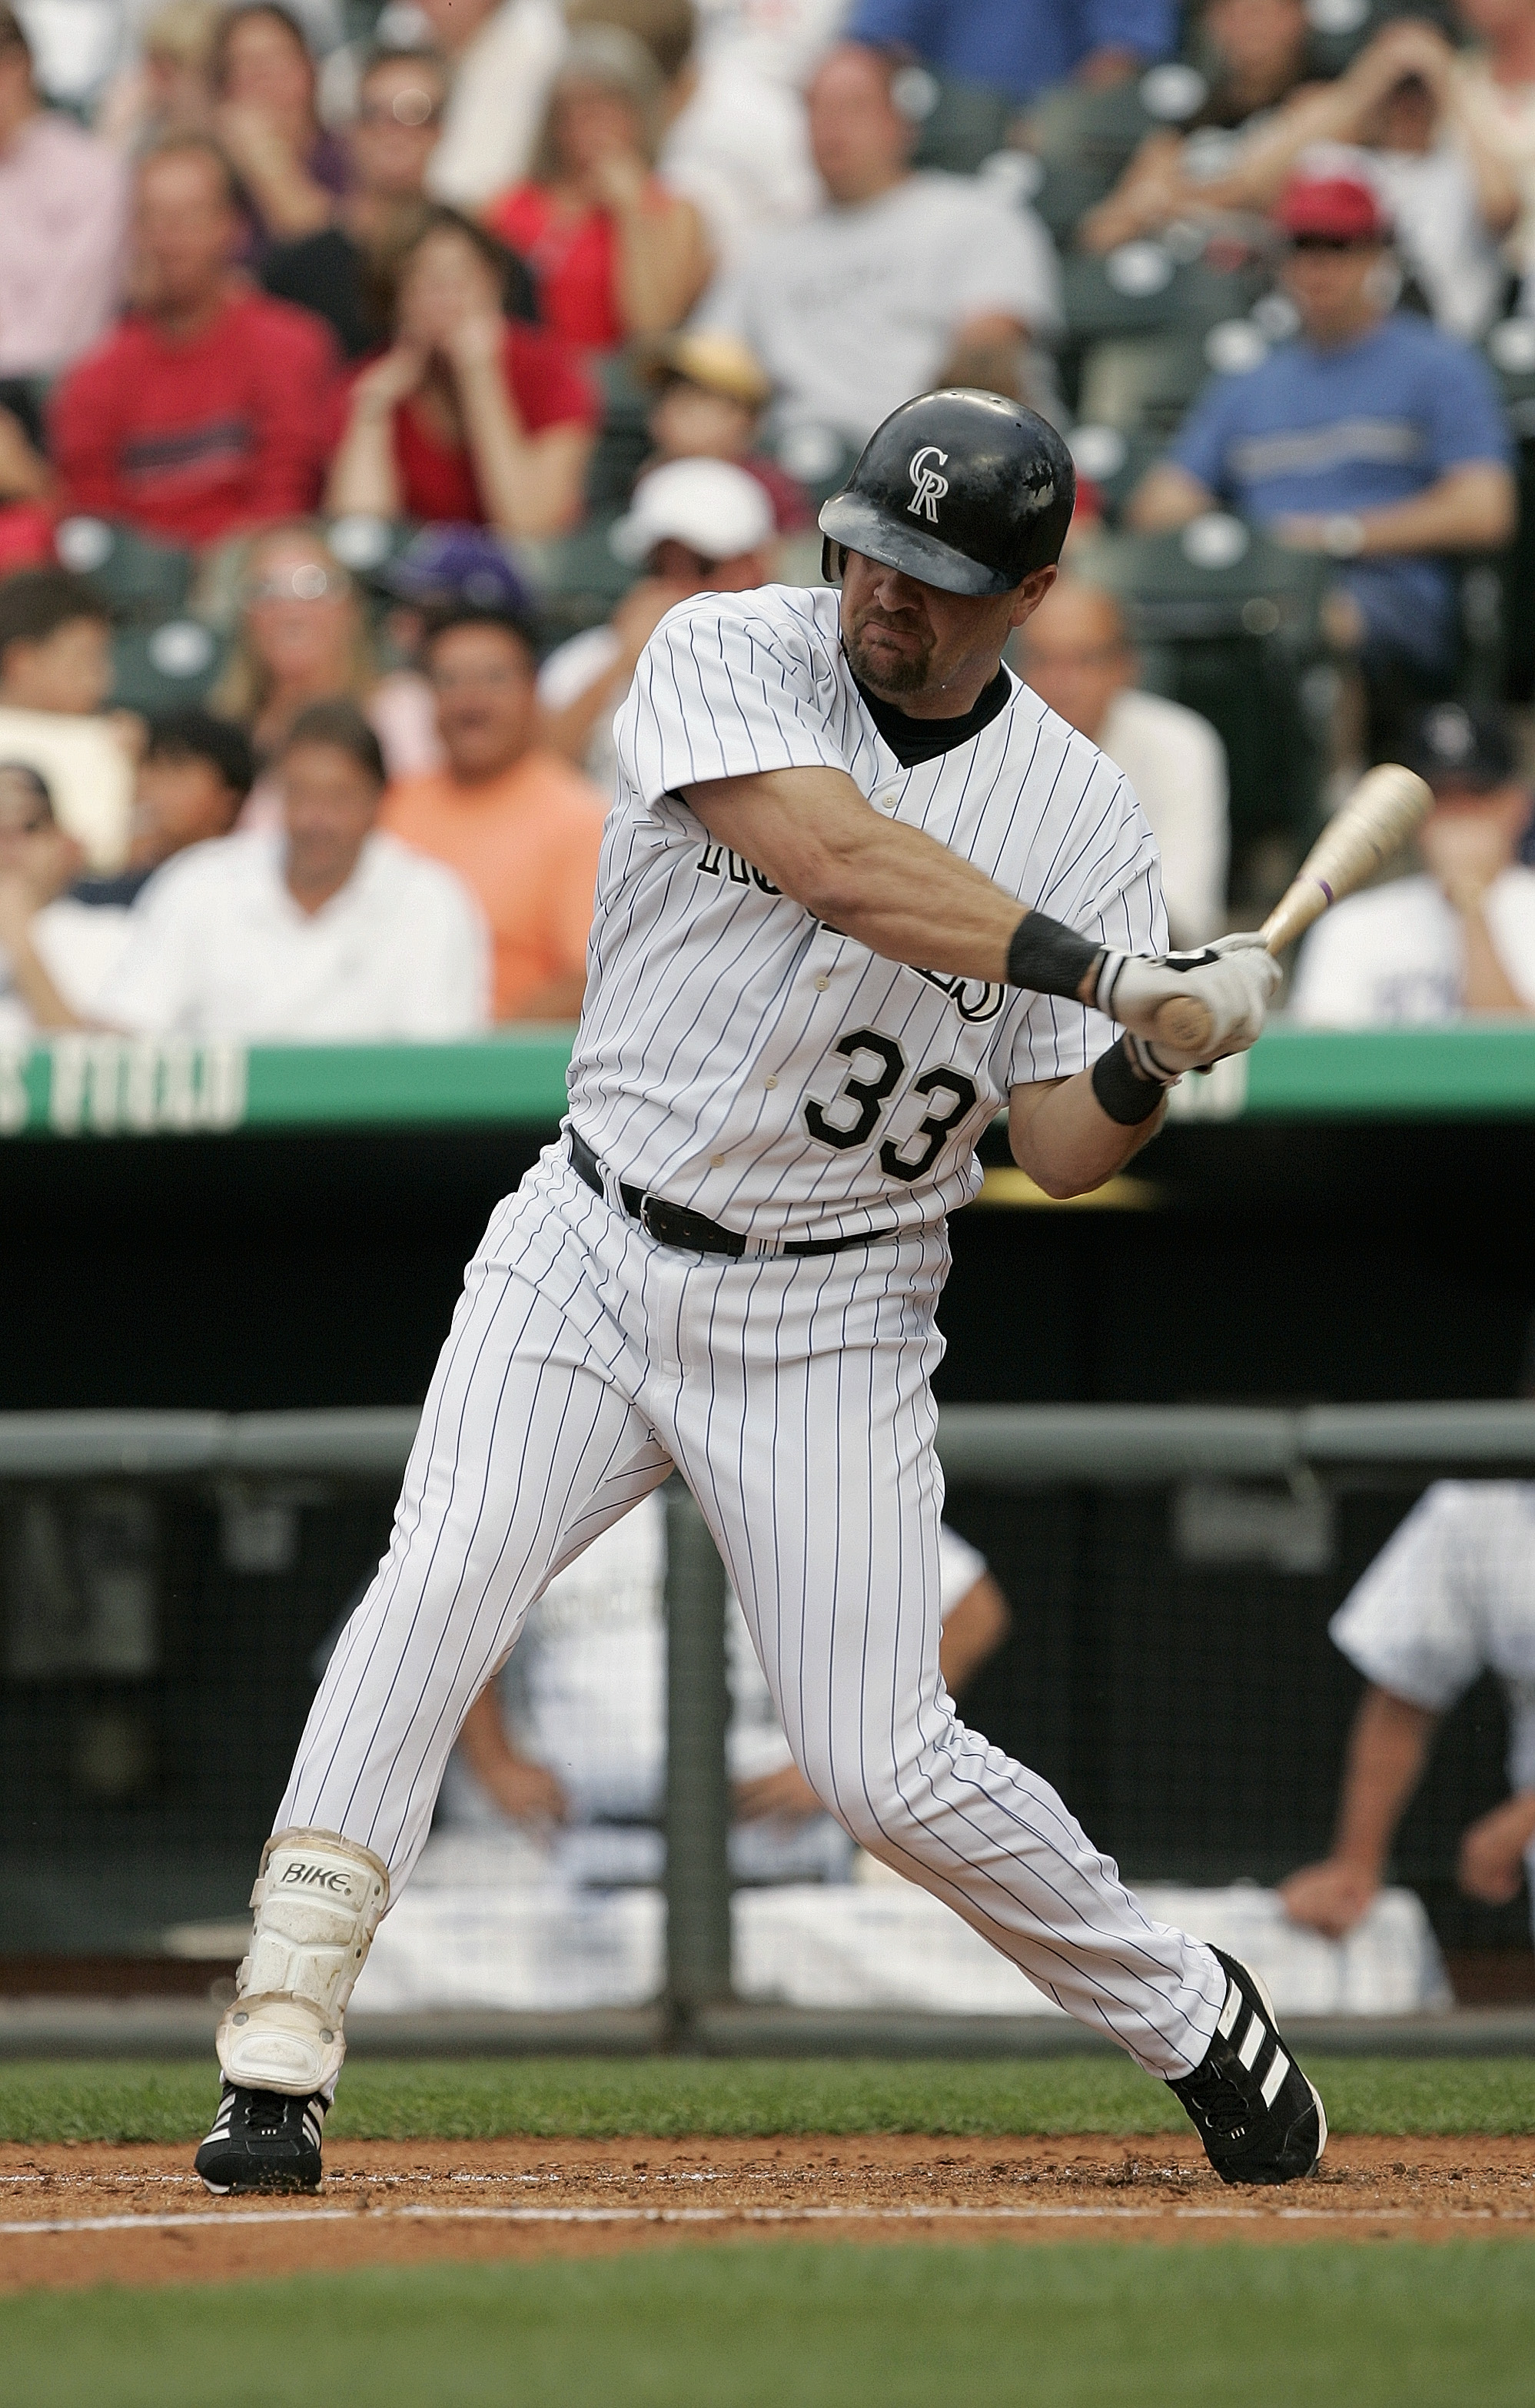 DENVER - JULY 3:  Outfielder Larry Walker #33 of the Colorado Rockies swings at a Detroit Tigers pitch during the interleague game at Coors Field on July 3, 2004 in Denver, Colorado.  The Rockies defeated the Tigers 11-6.  (Photo by Brian Bahr/Getty Image